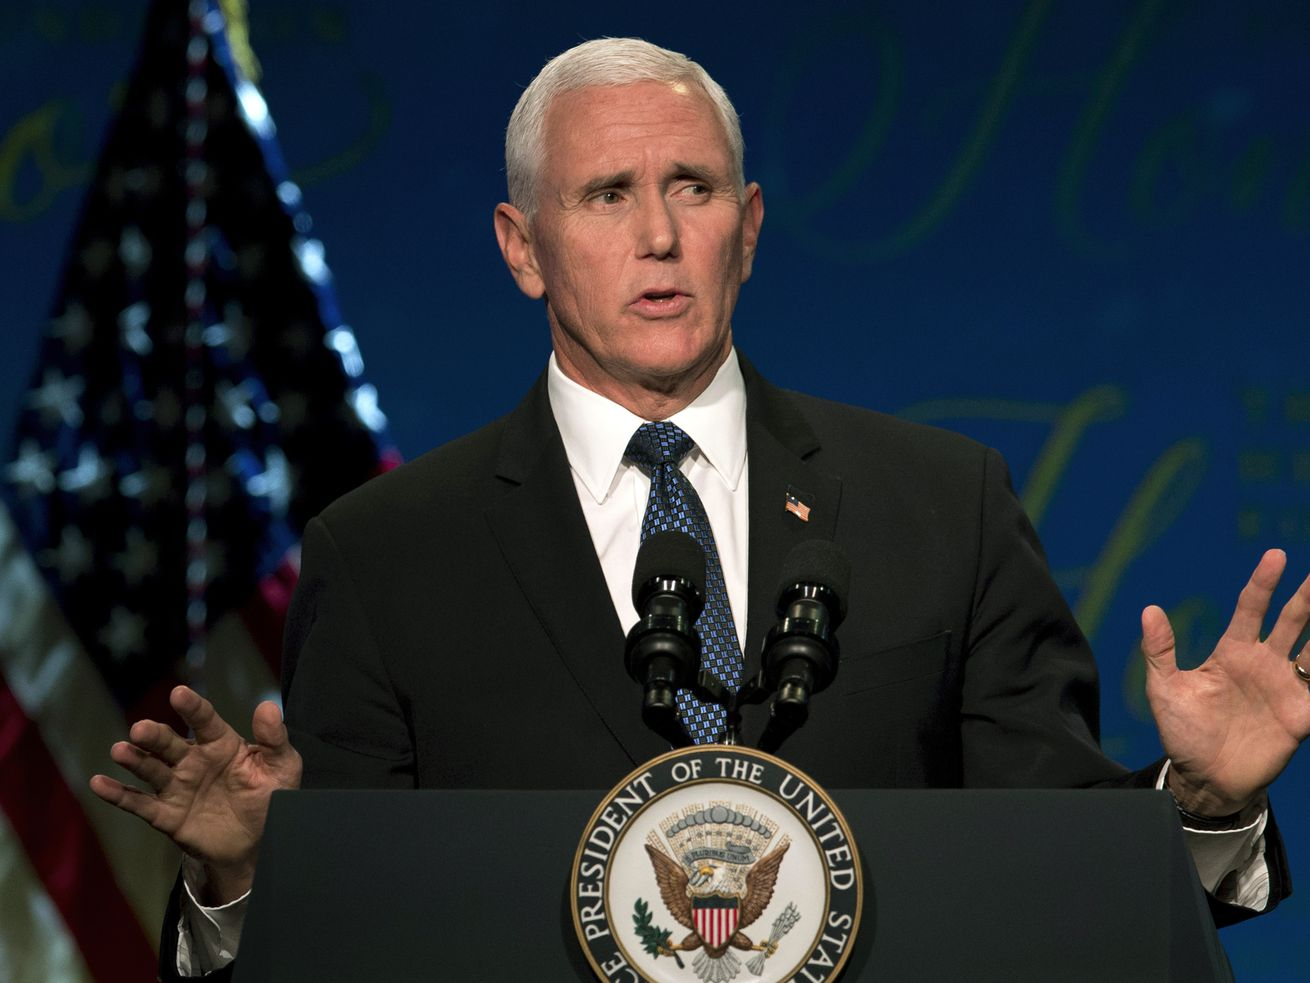 Vice President Mike Pence criticized Nike and the NBA in a speech.